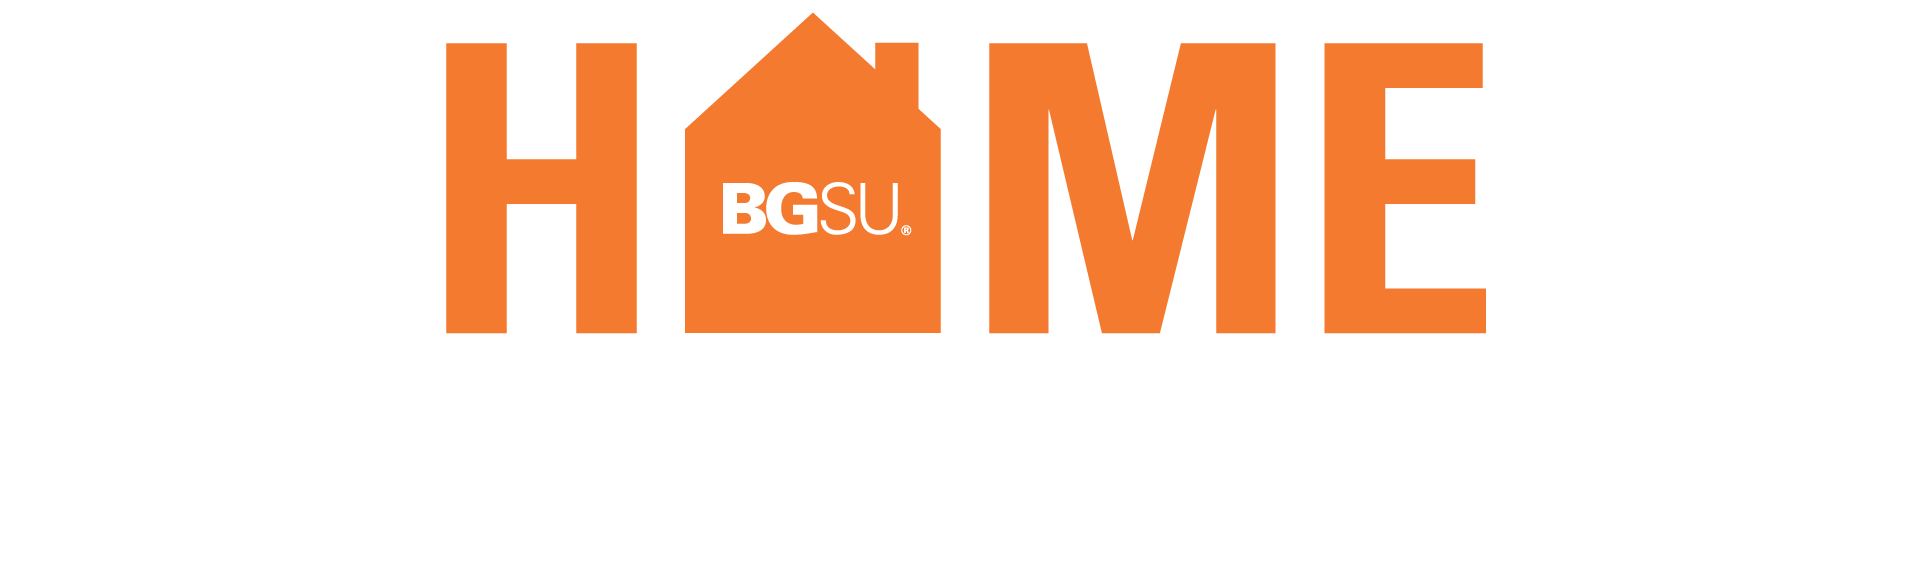 Home for Homecoming, October 1-4, 2020